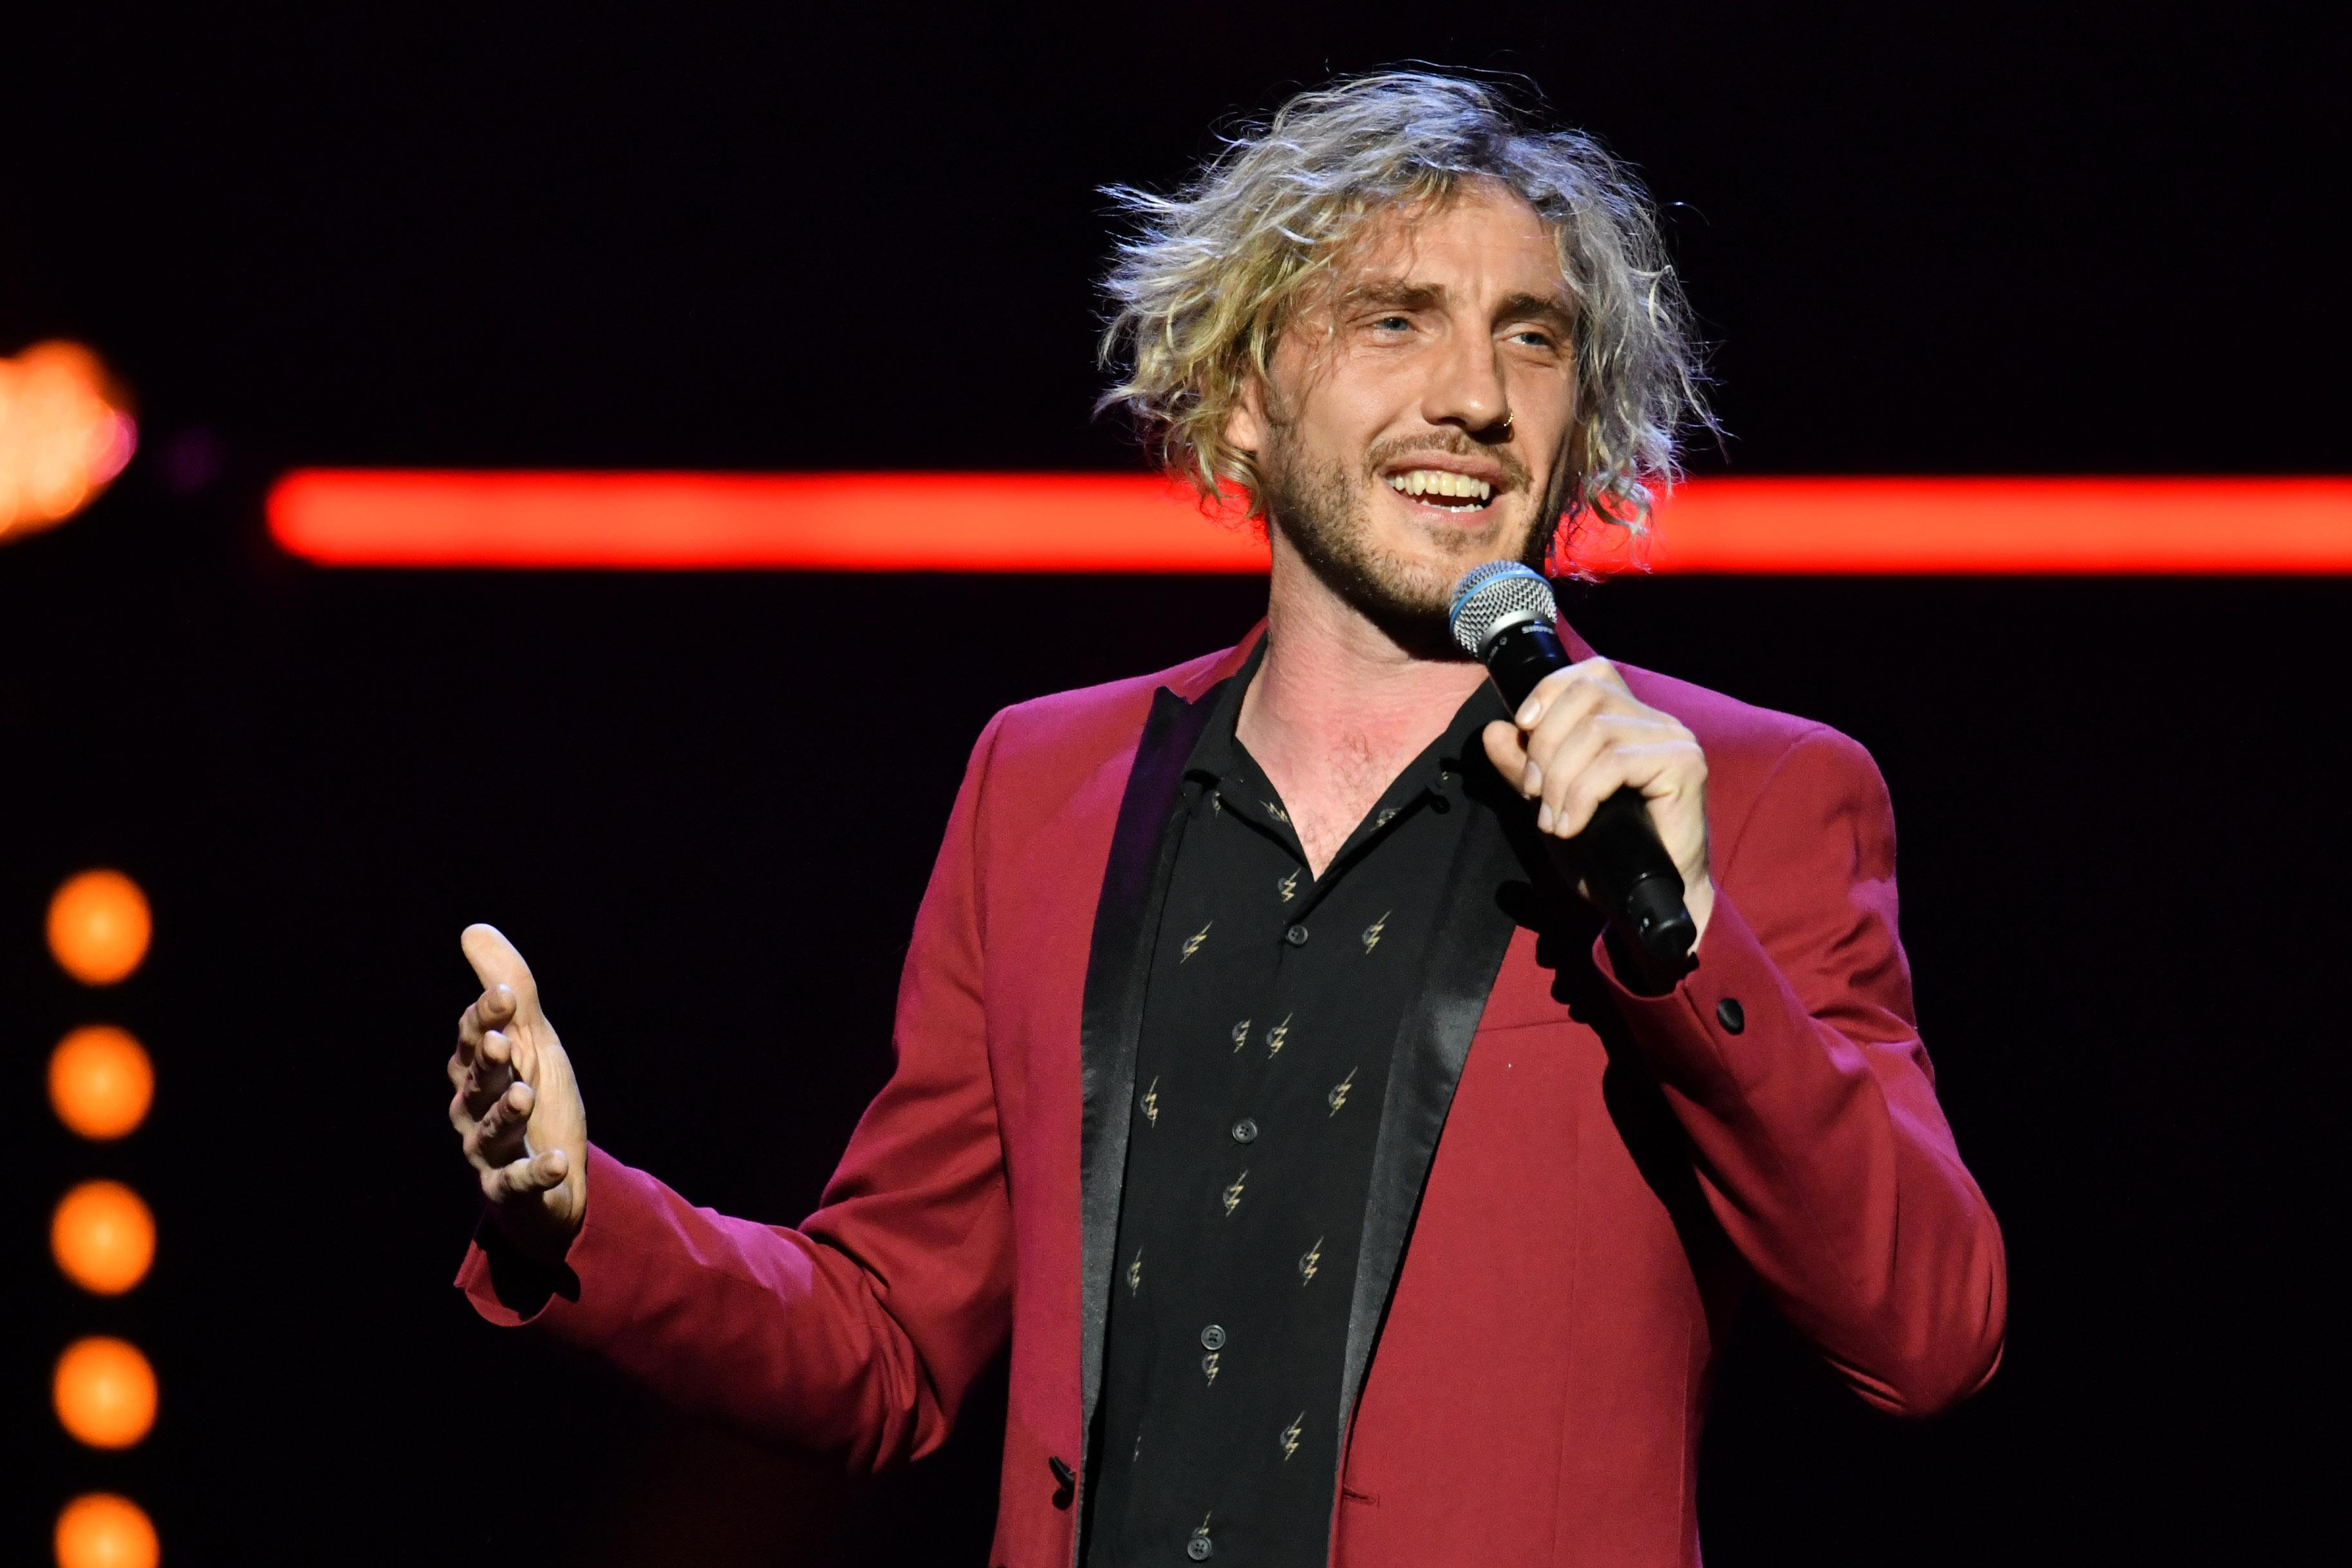 Strictly star Seann Walsh 'not surprised' by death of Caroline Flack